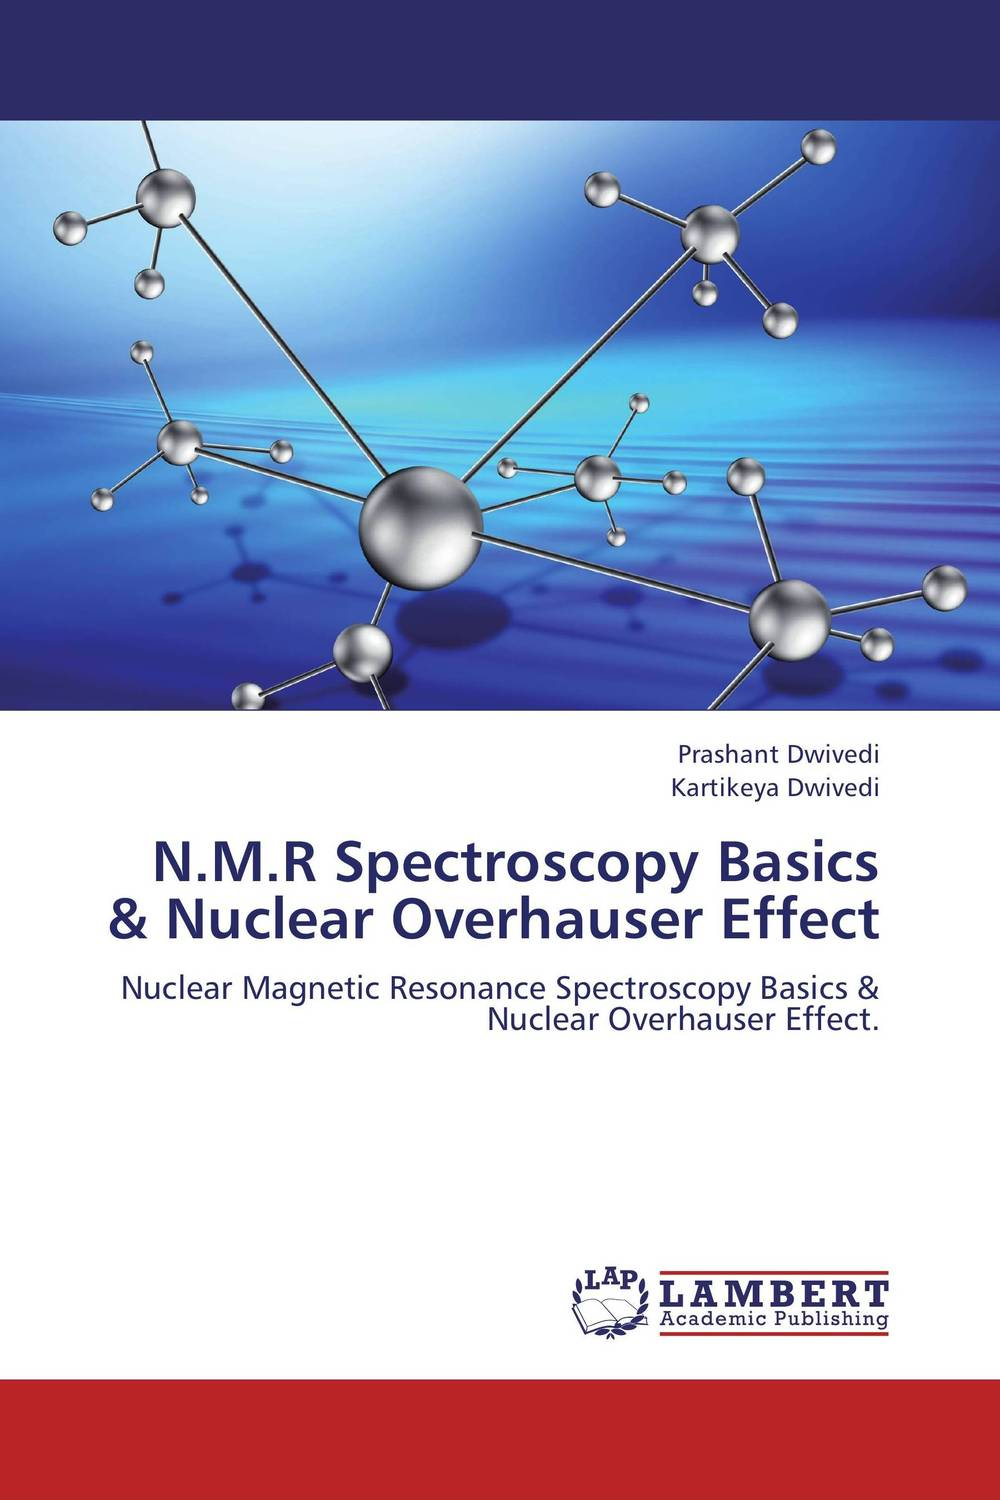 N.M.R Spectroscopy Basics & Nuclear Overhauser Effect surface nuclear magnetic resonance